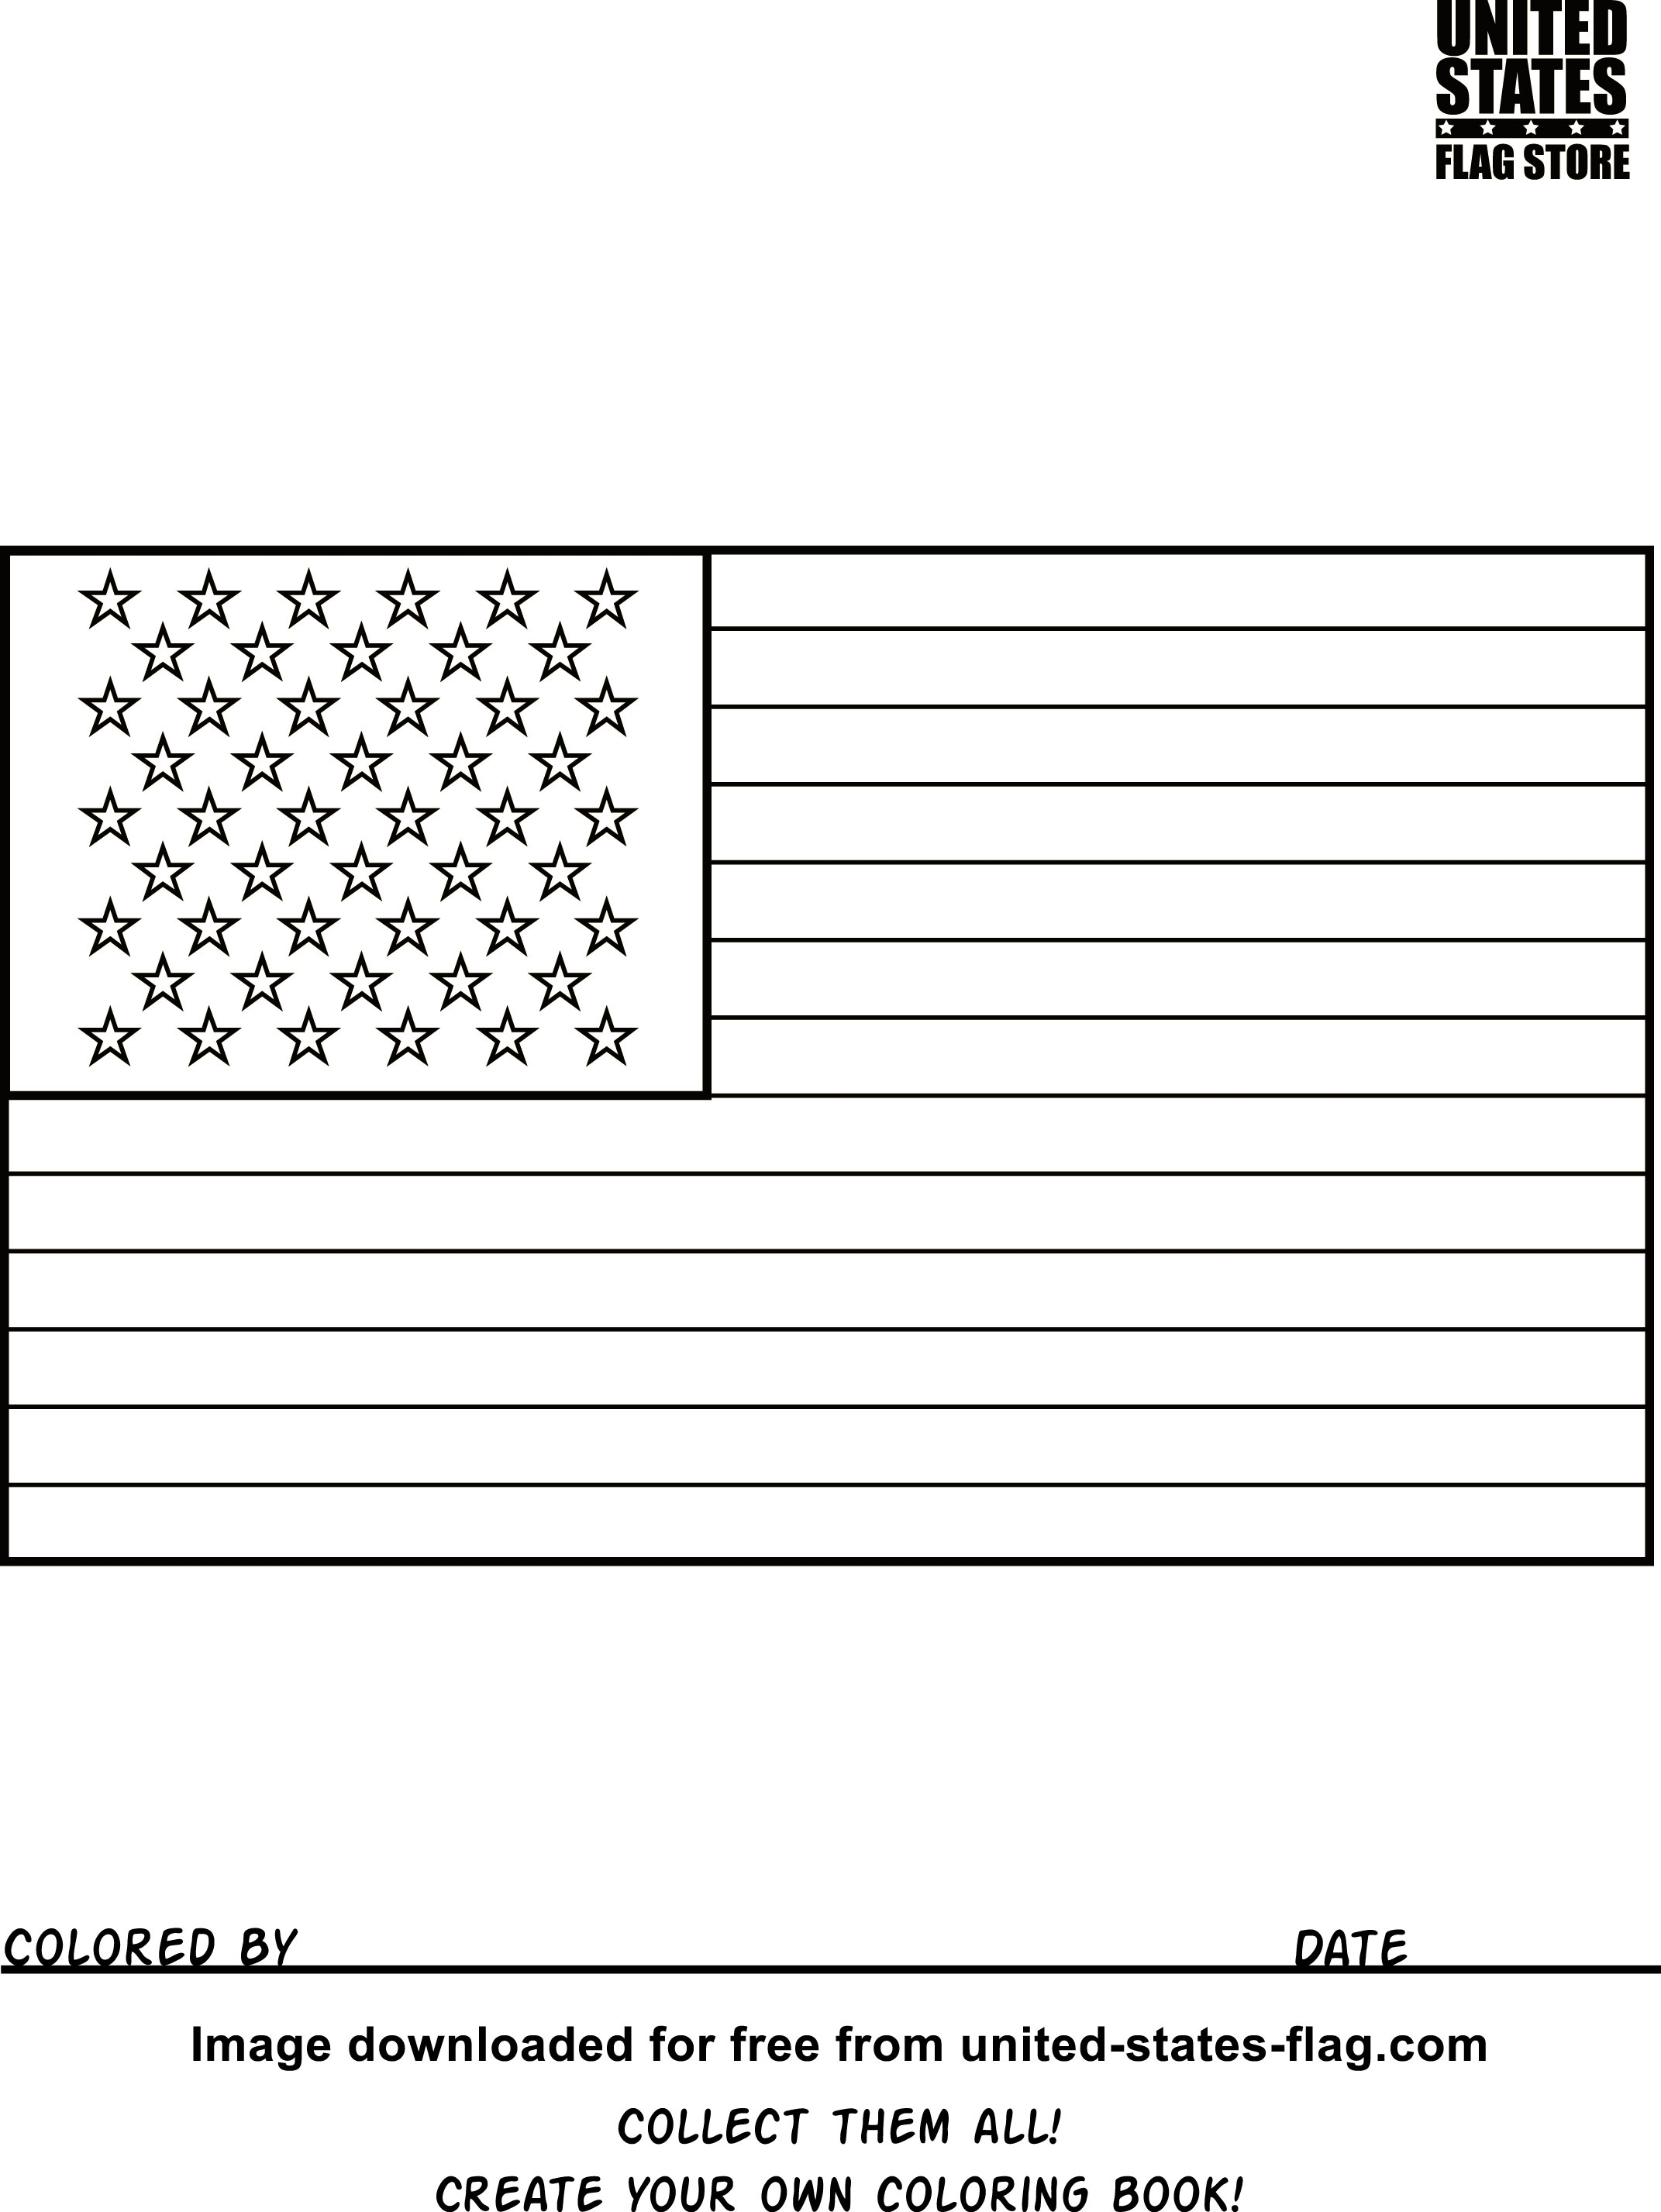 usa coloring pages - american flag coloring book